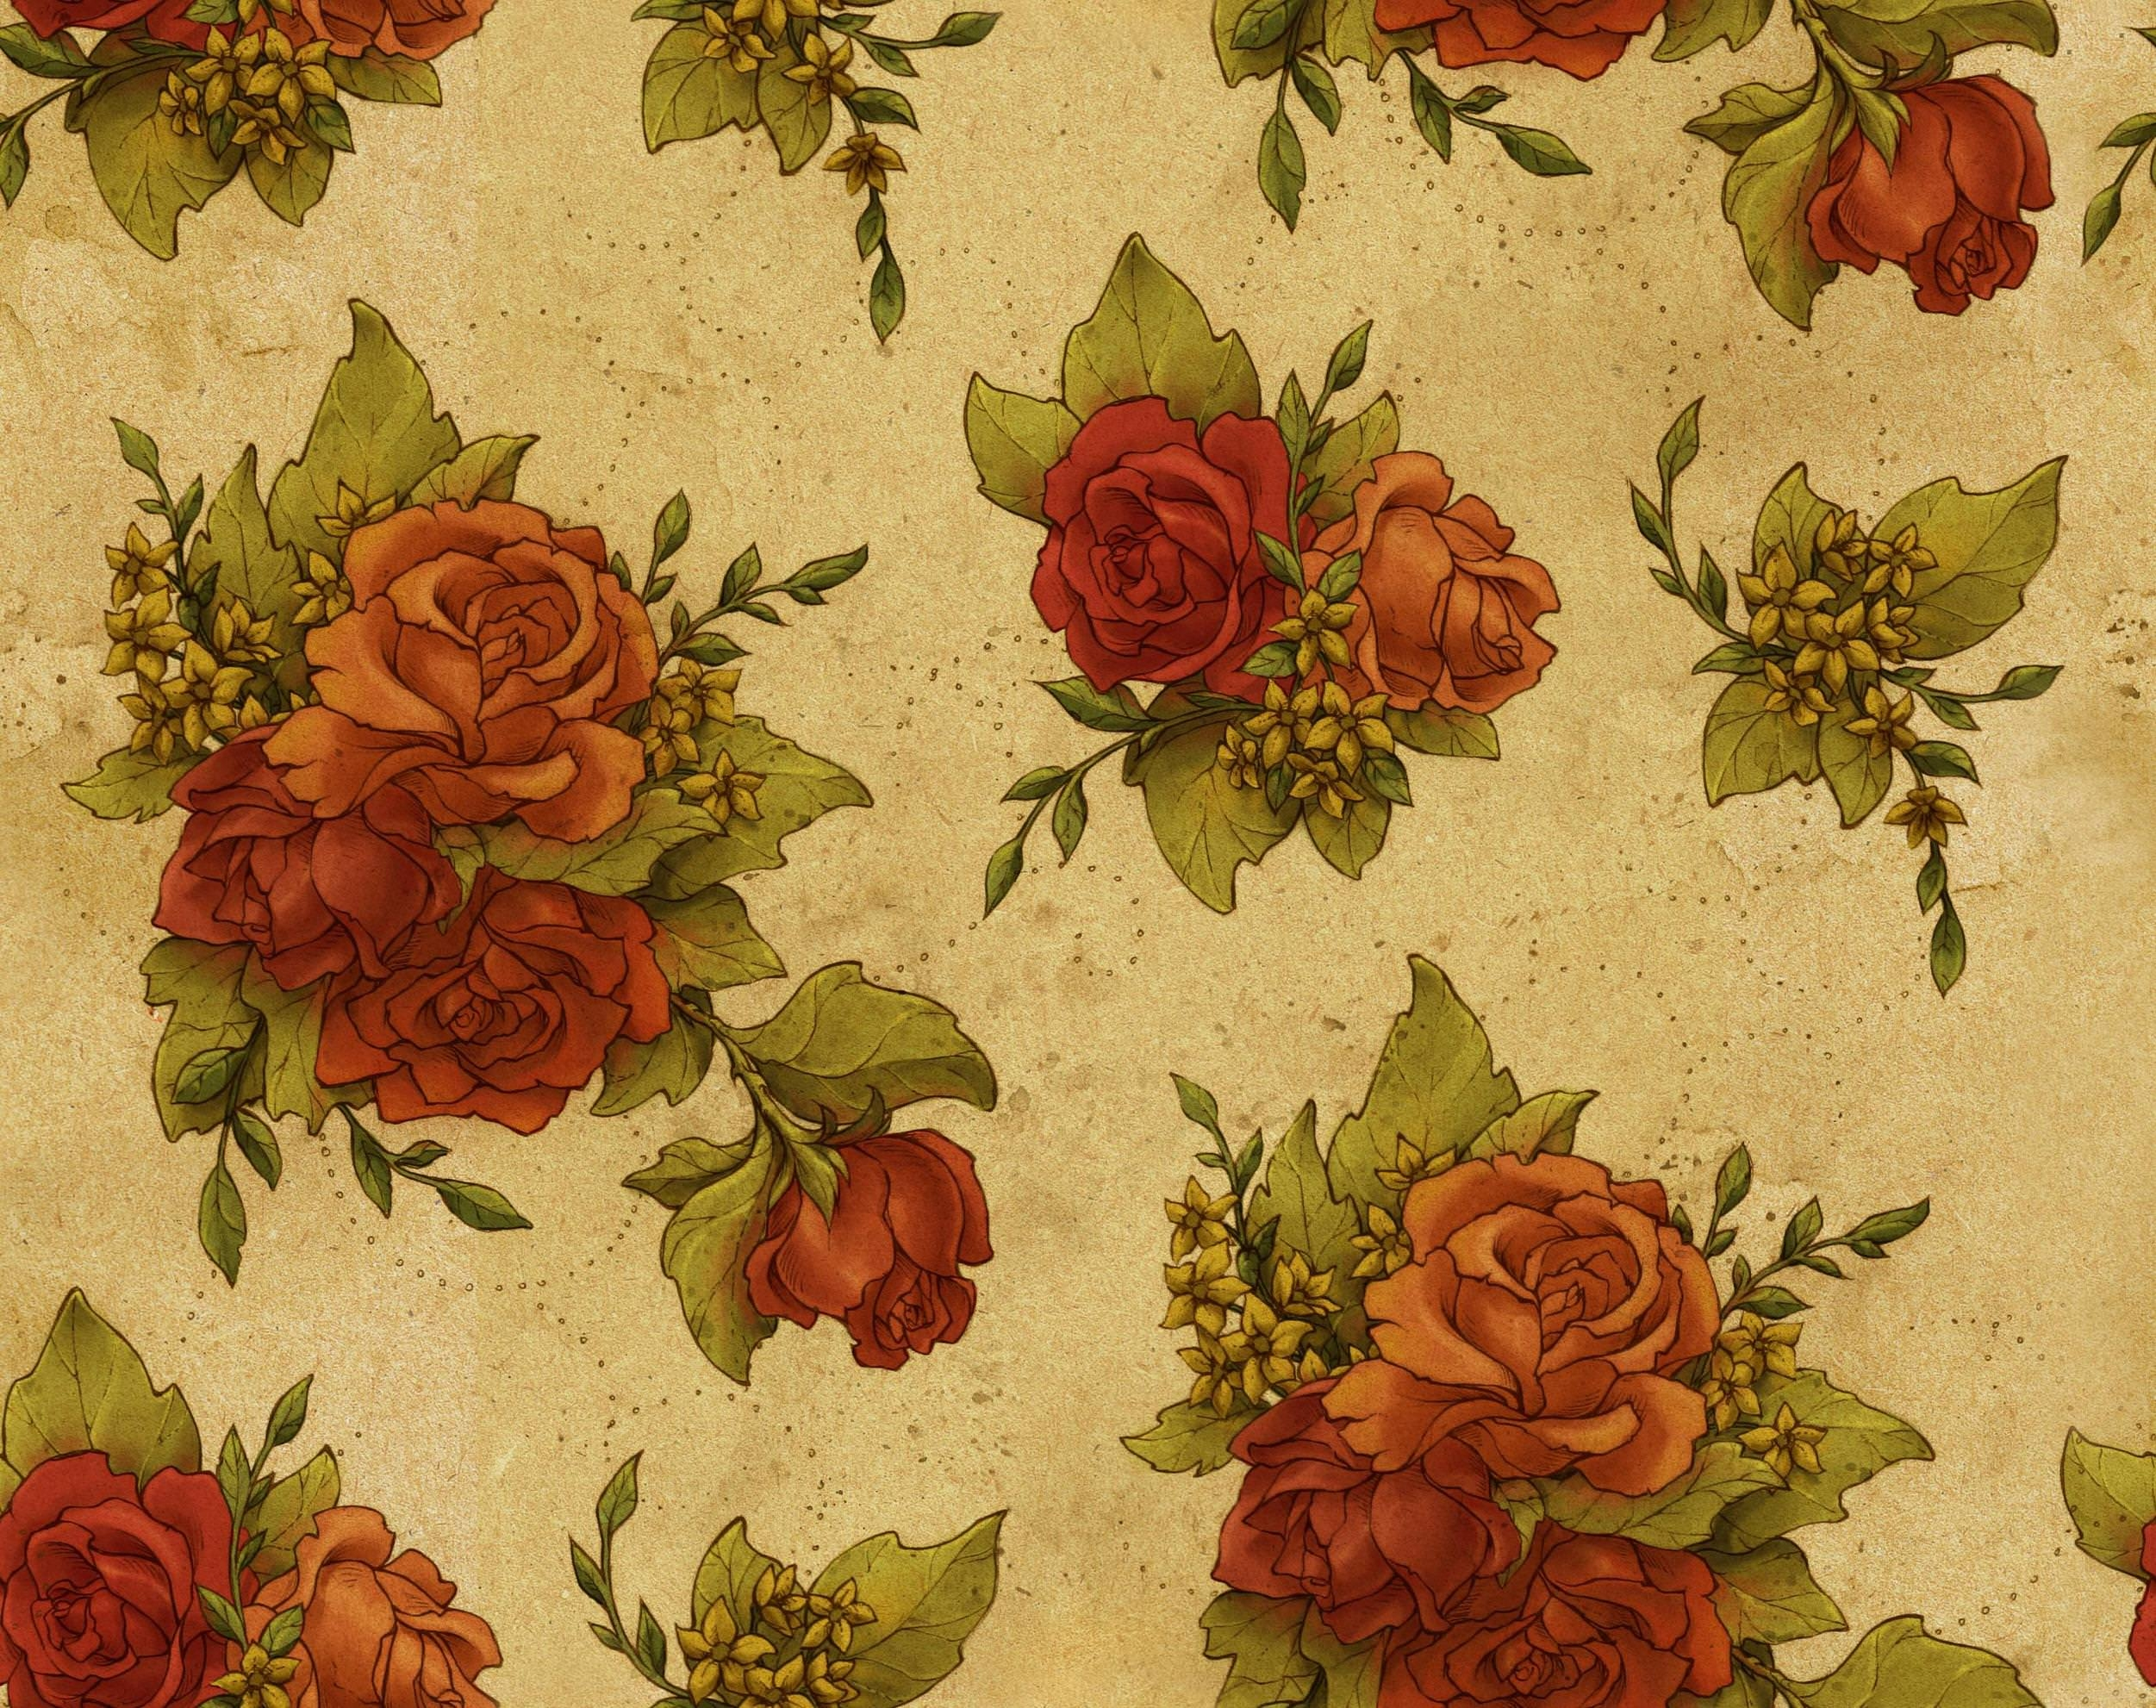 10 Dark Floral Wallpapers Floral Patterns FreeCreatives